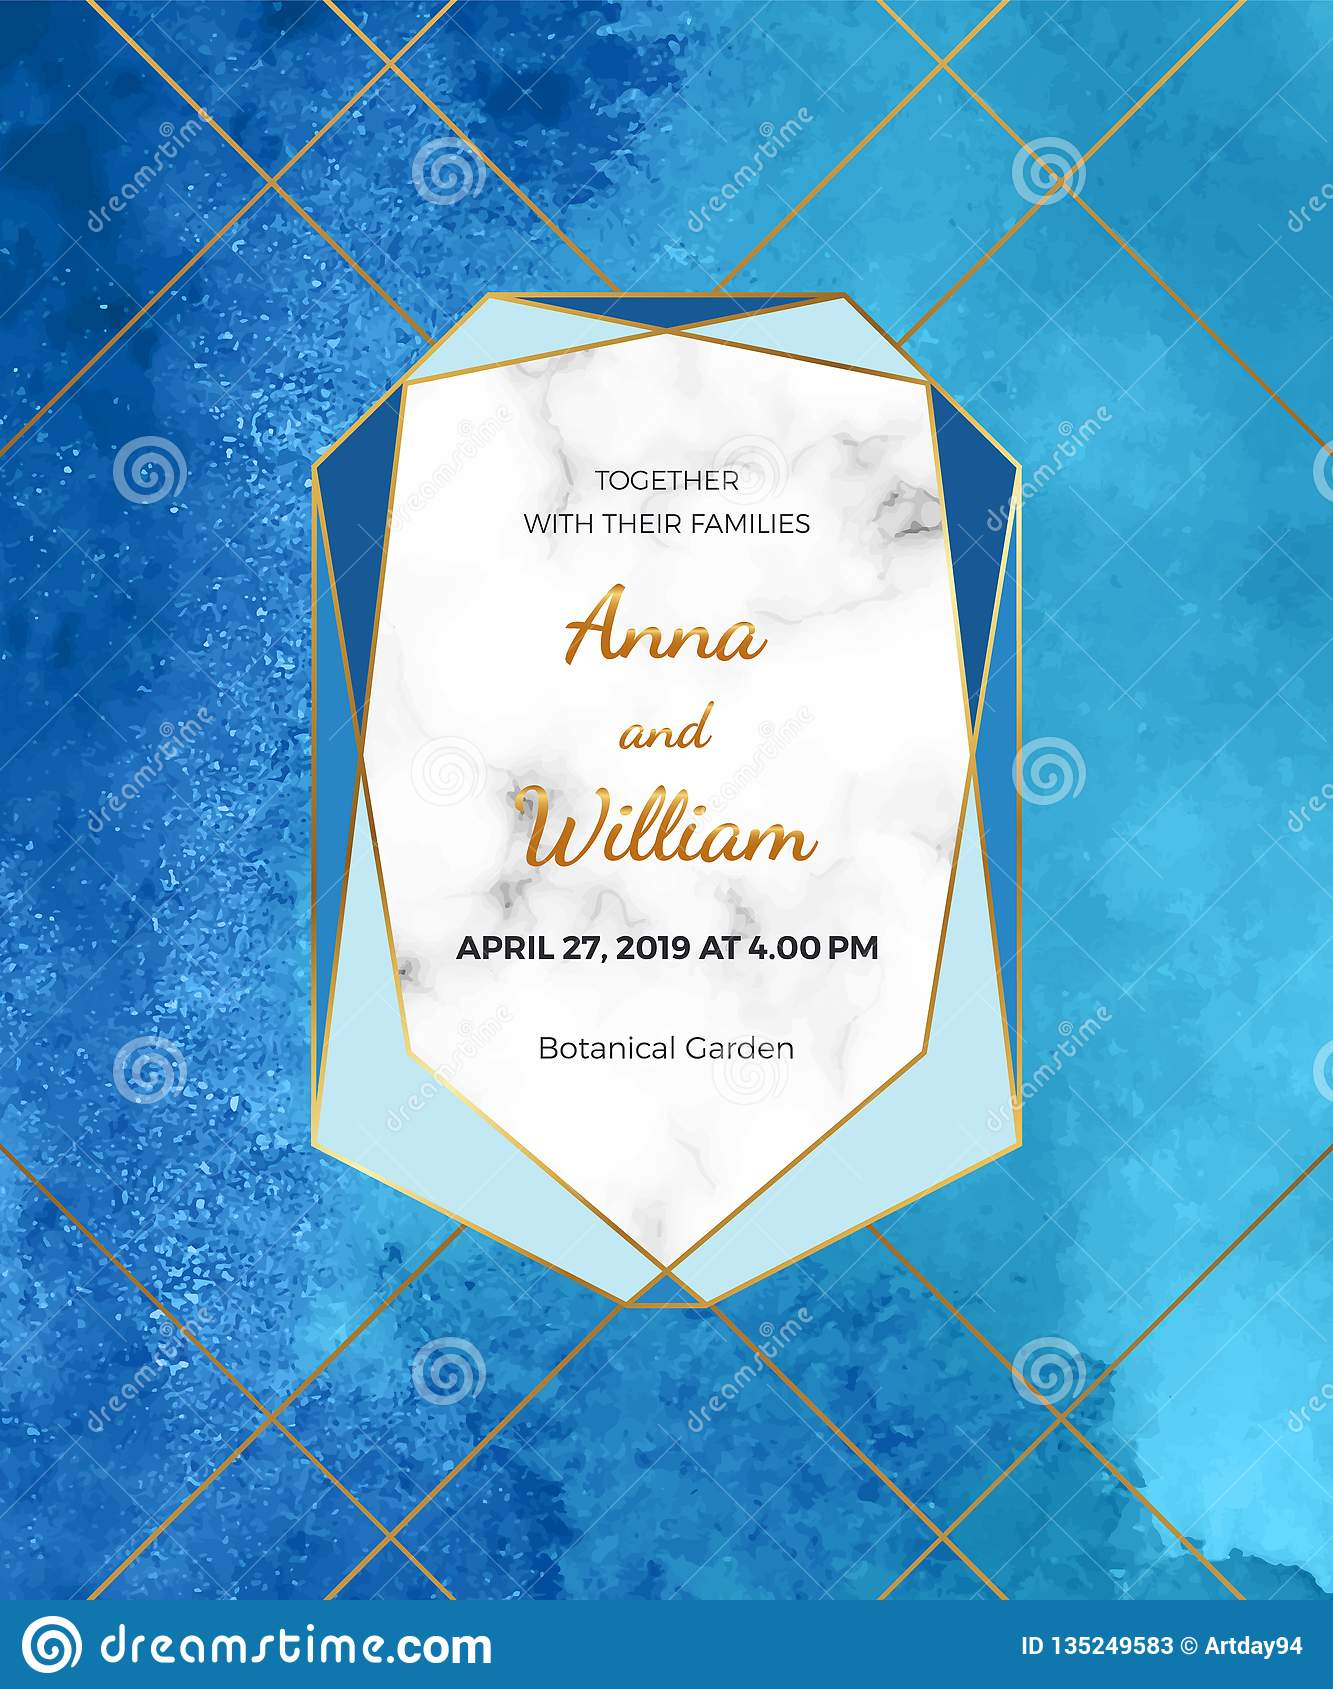 Blue Watercolor Wedding Invitation Card With Marble Frame